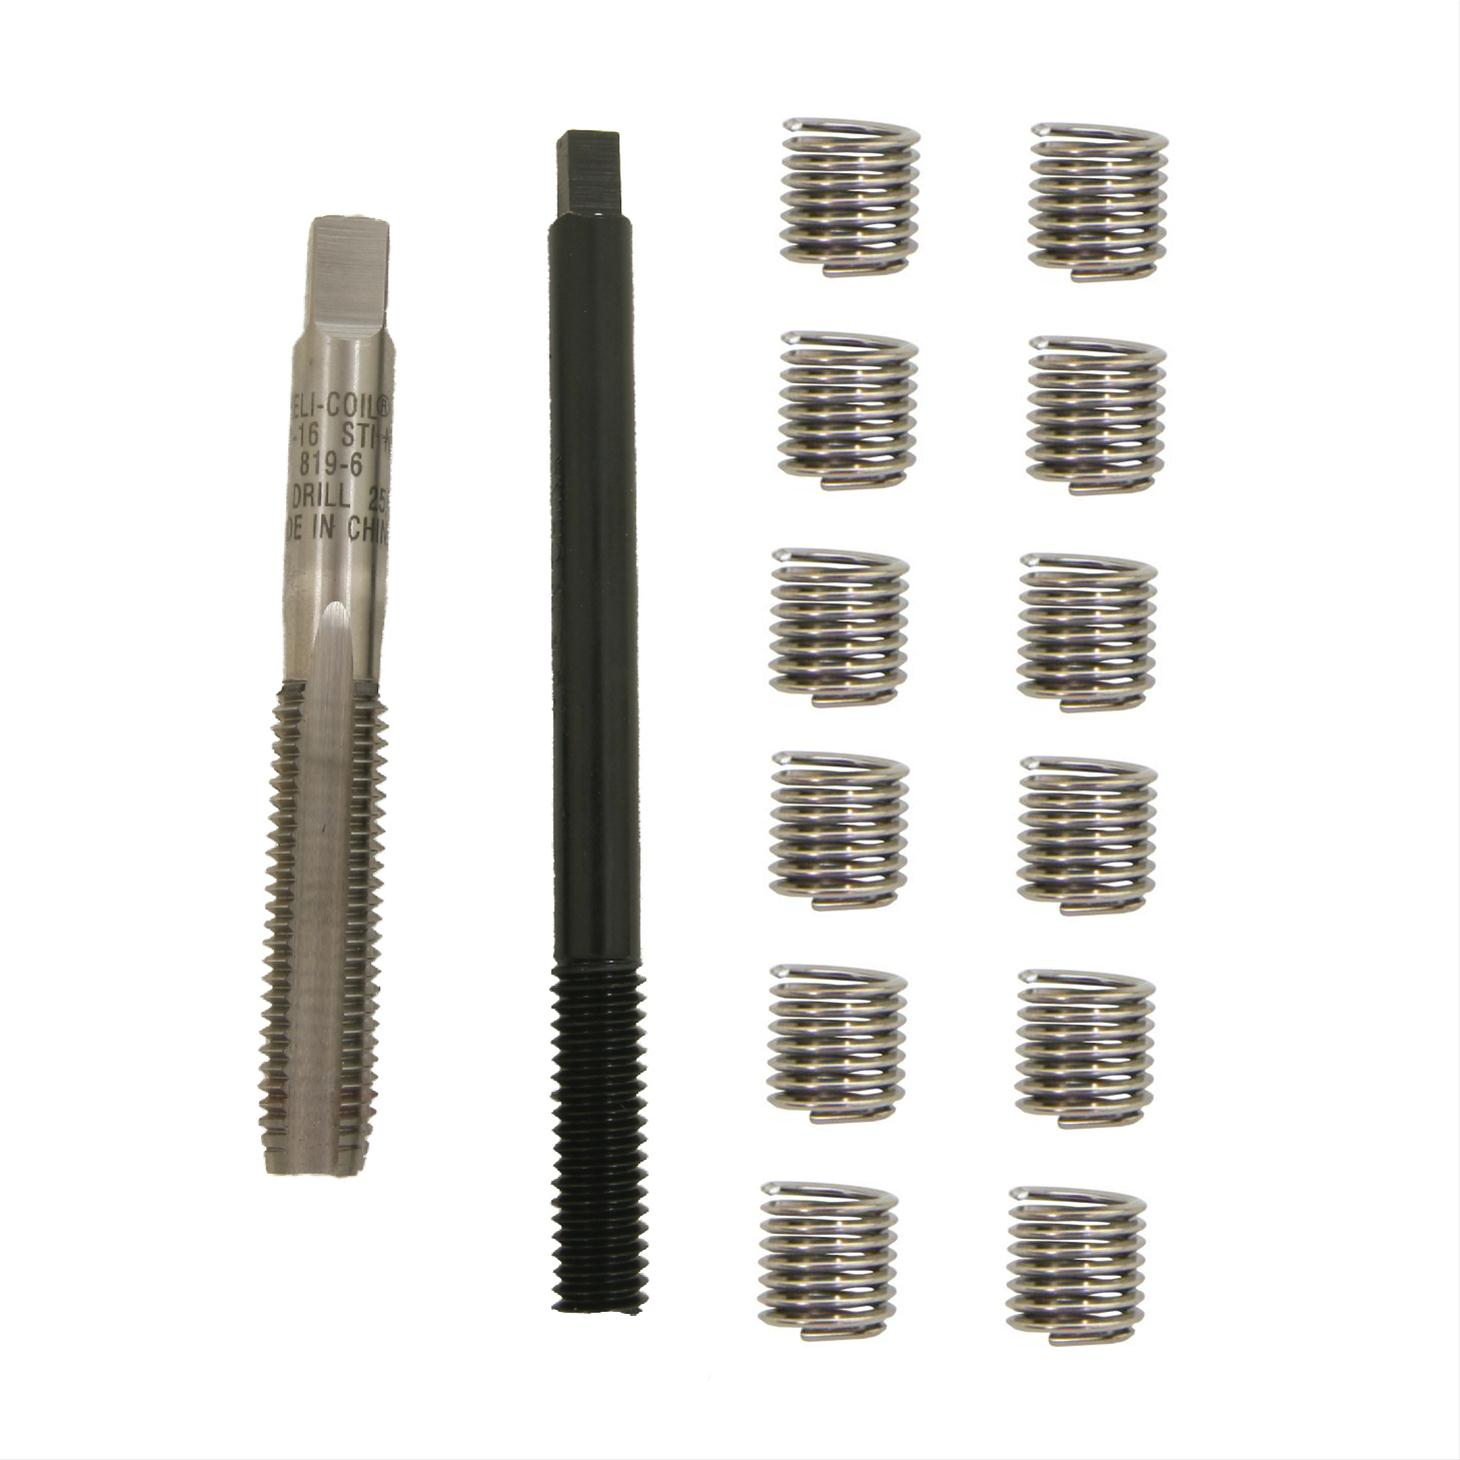 Heli-Coil Thread Inserts 5521-6 - Free Shipping on Orders Over $99 ...